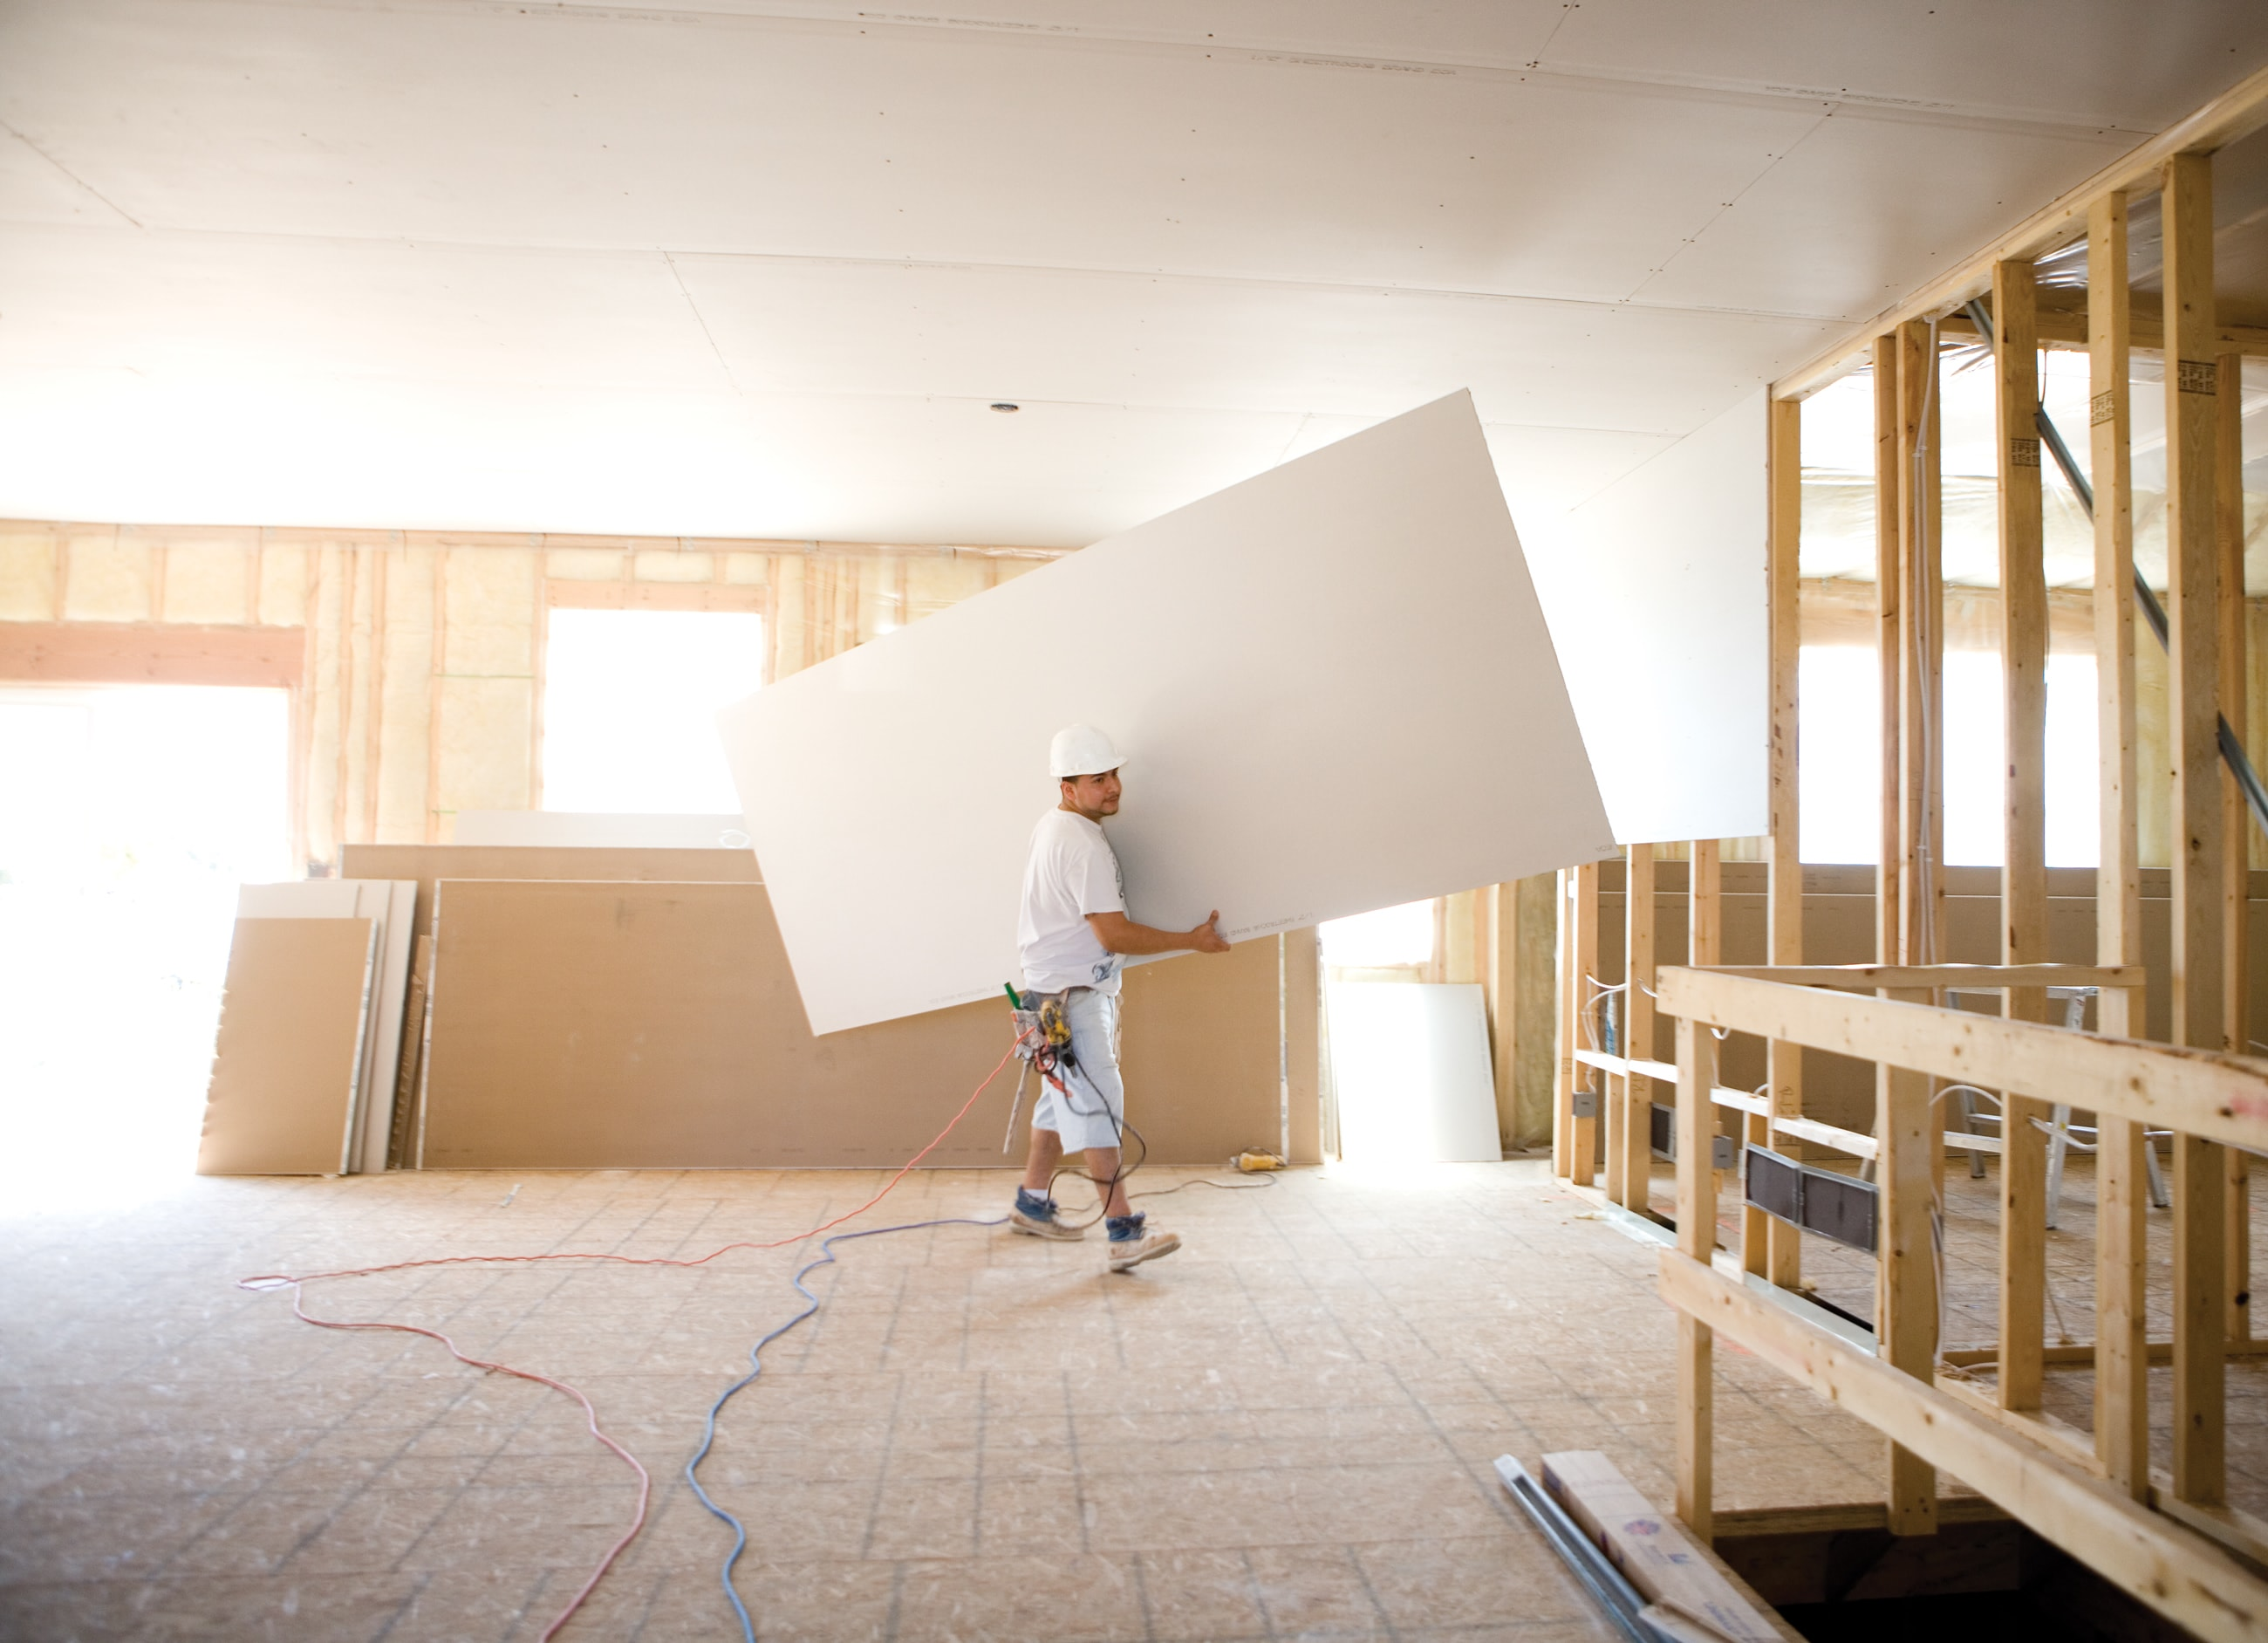 How to hang drywall on walls - Ultralight Drywall Man Hanging Ultralight Drywall